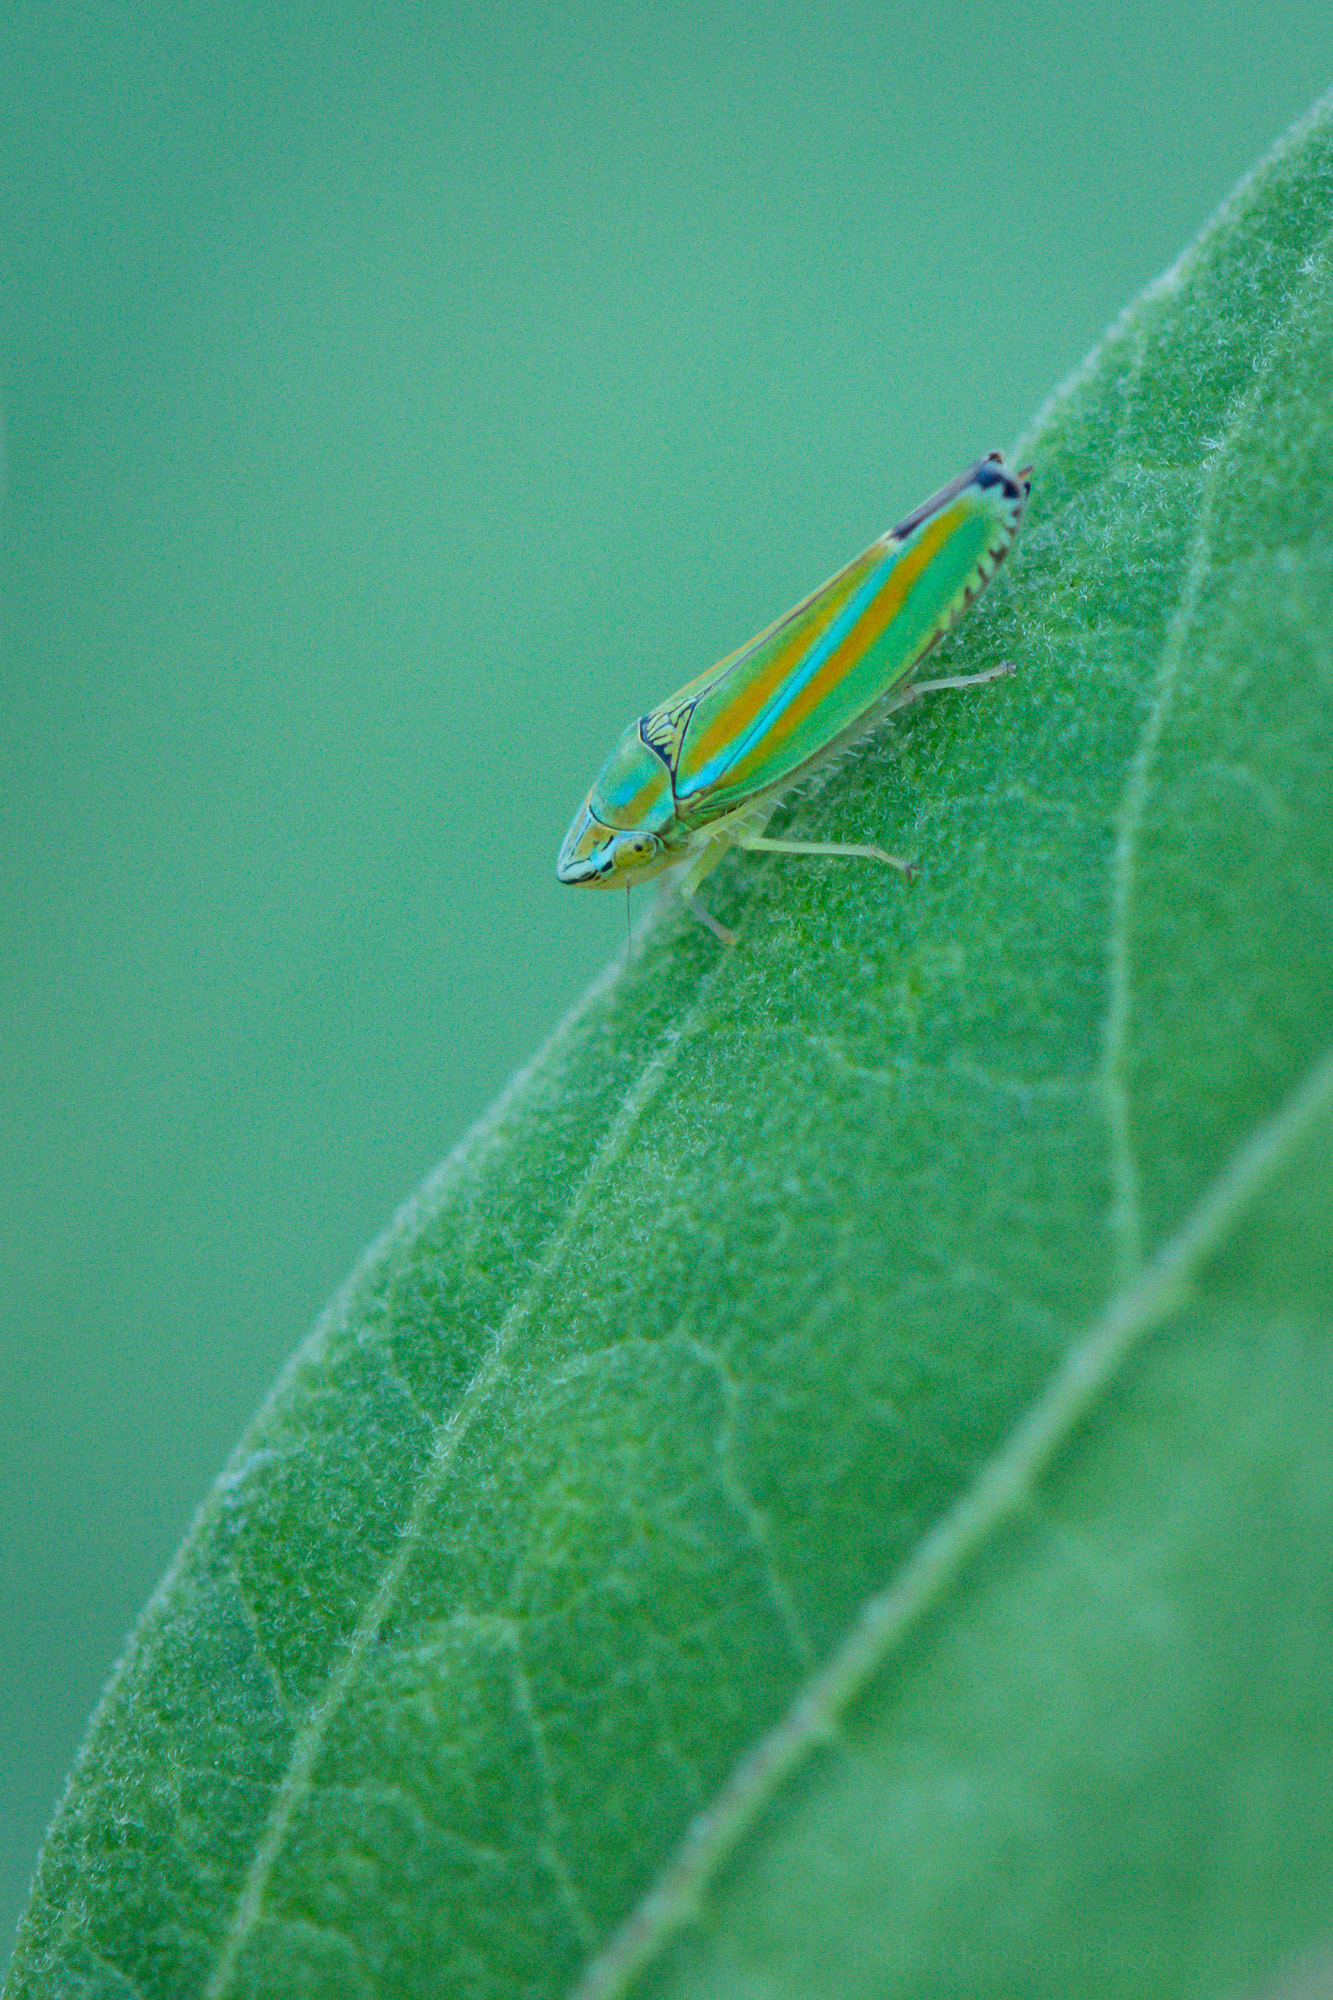 Versute Sharpshooter Leafhopper on the edge of an hibiscus leaf.